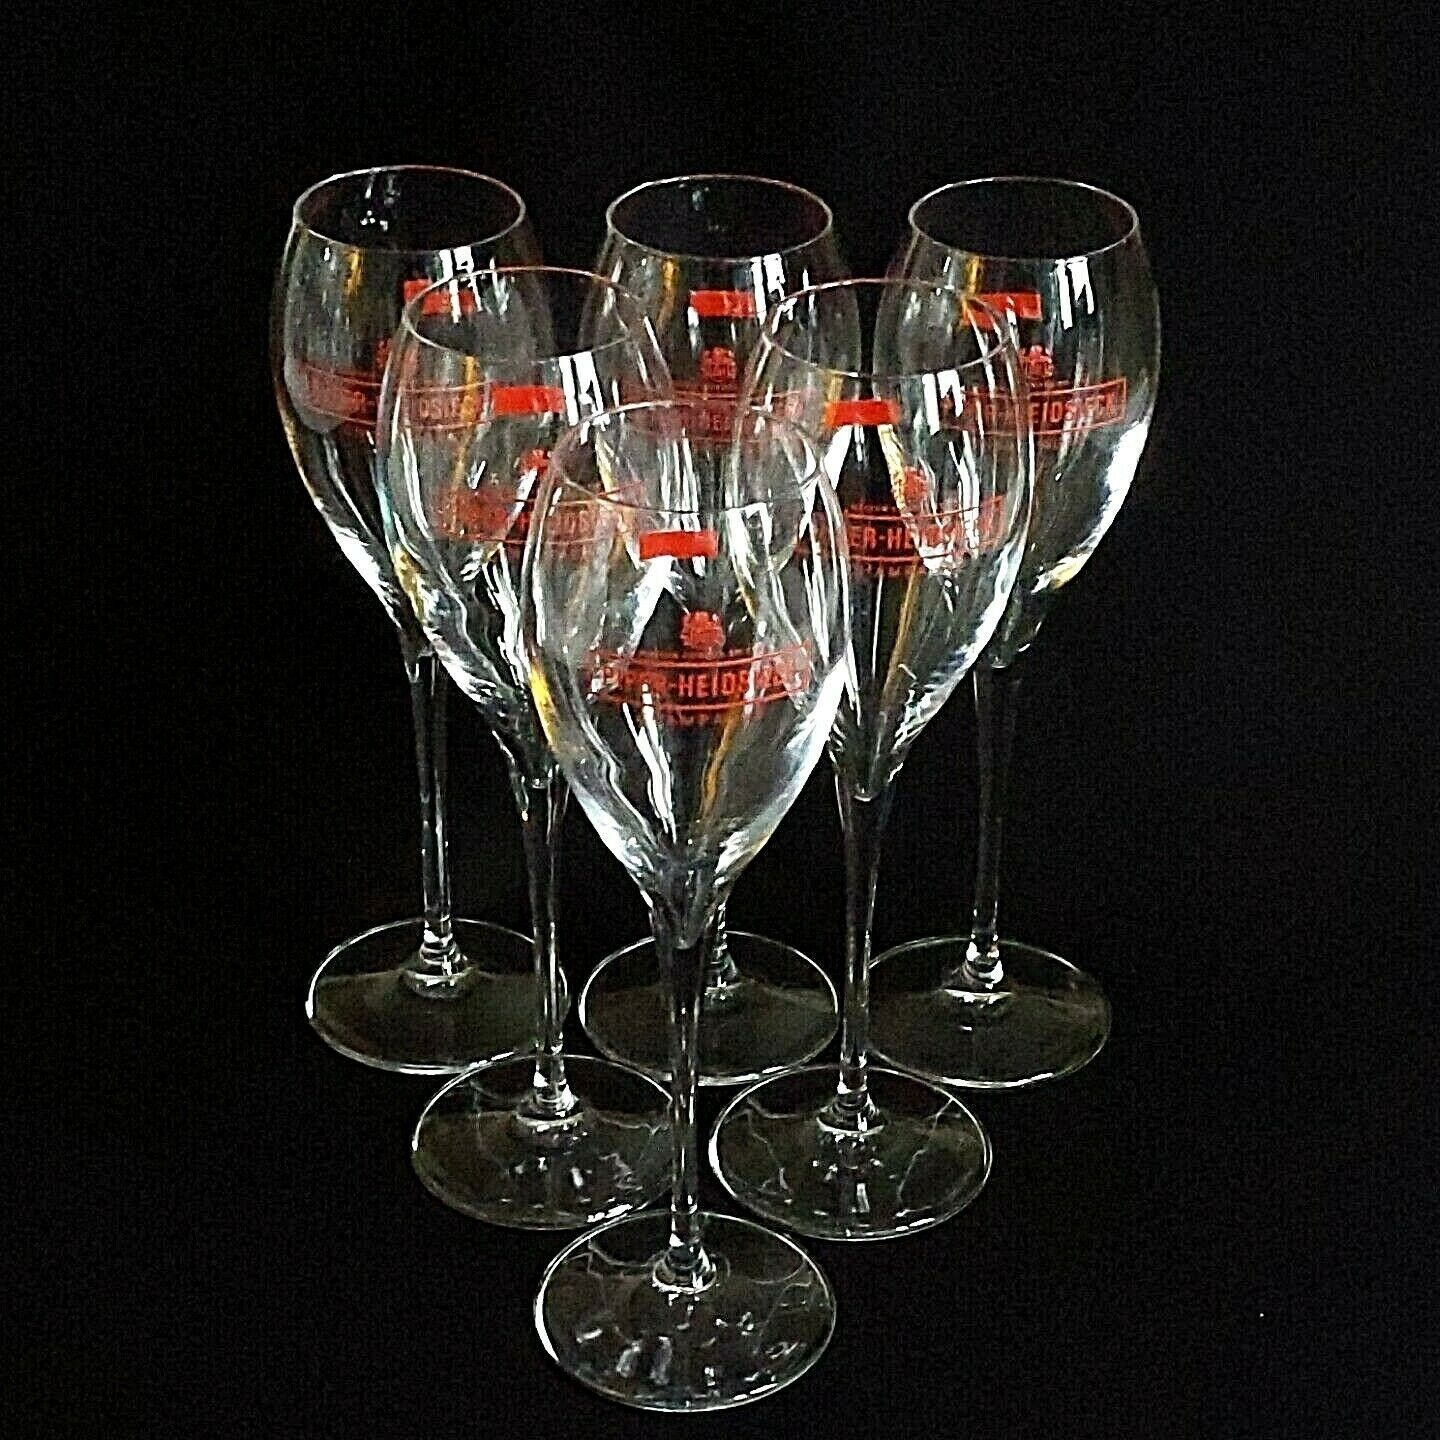 6 (Six) PIPER-HEIDSIECK RED LOGO Maison Fonde'e  1785 Crystal Champagne Flutes